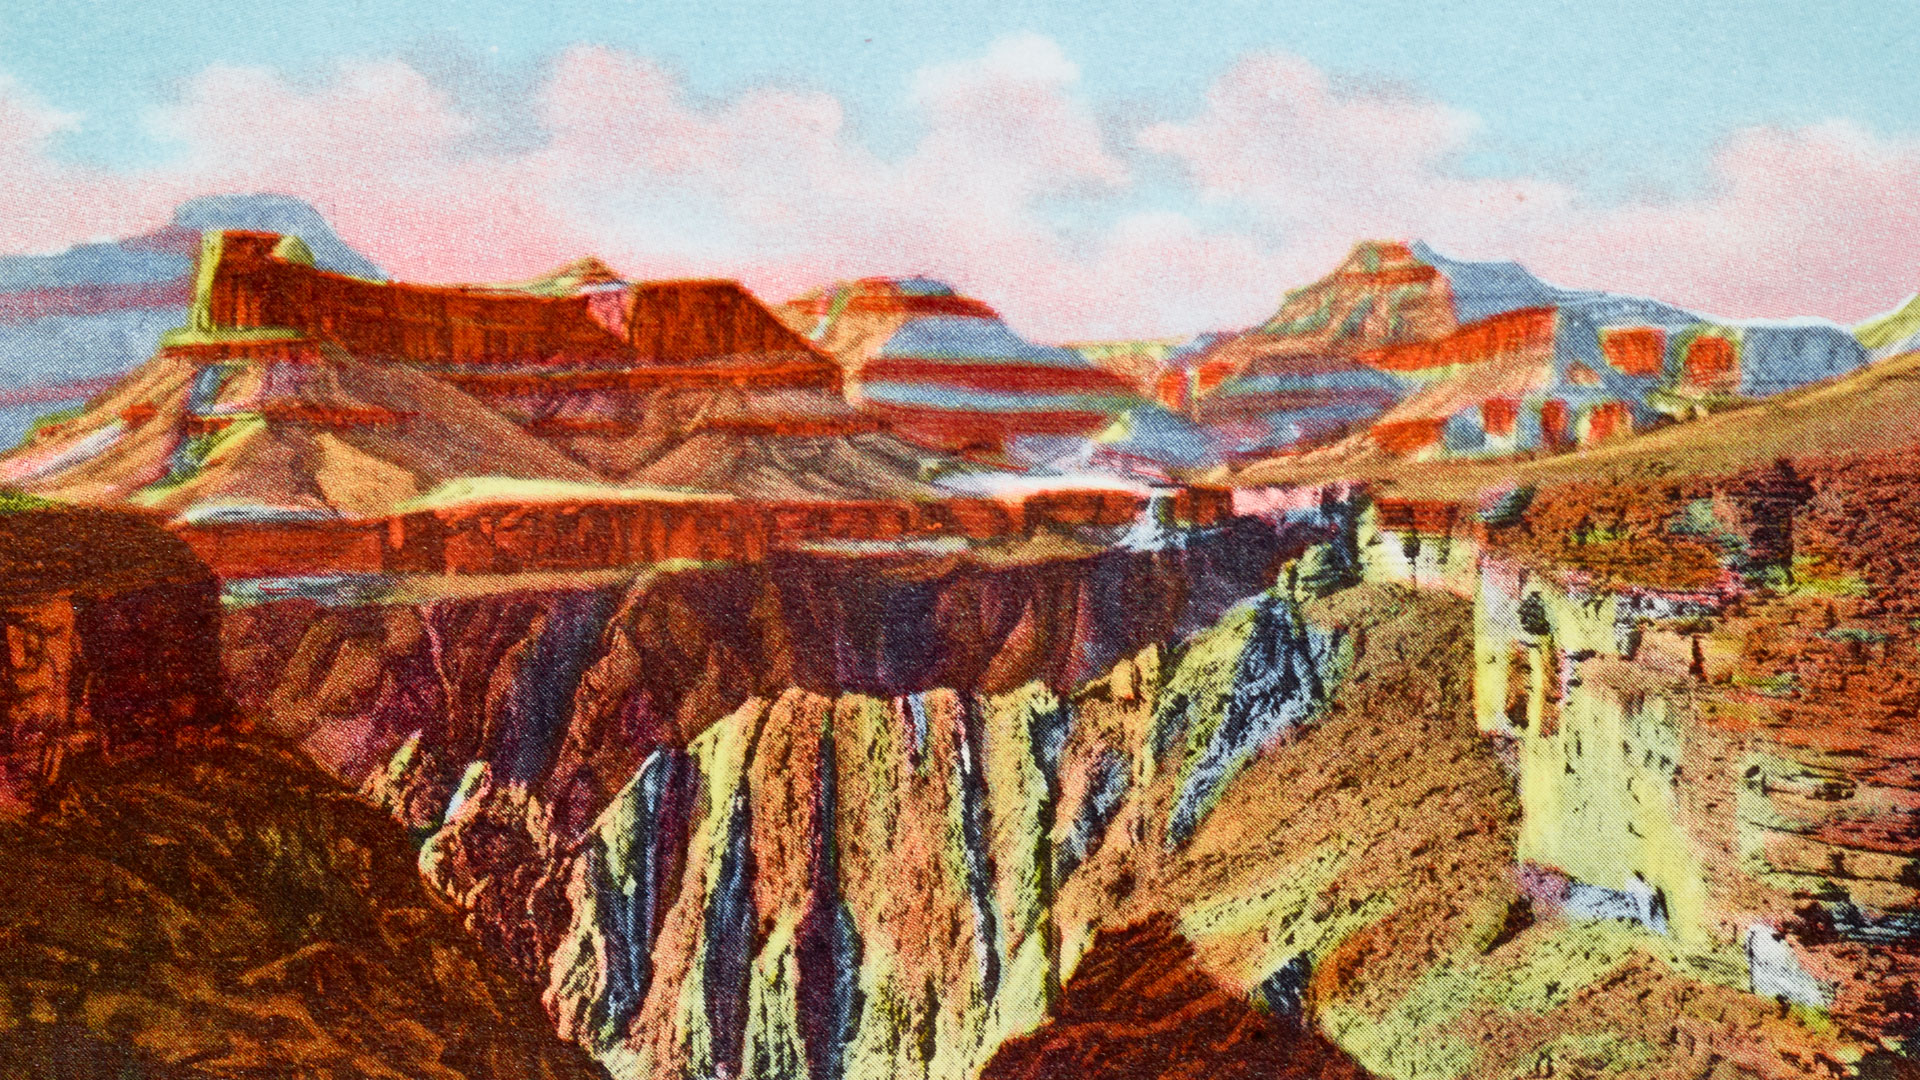 Postcard illustration of the Grand Canyon